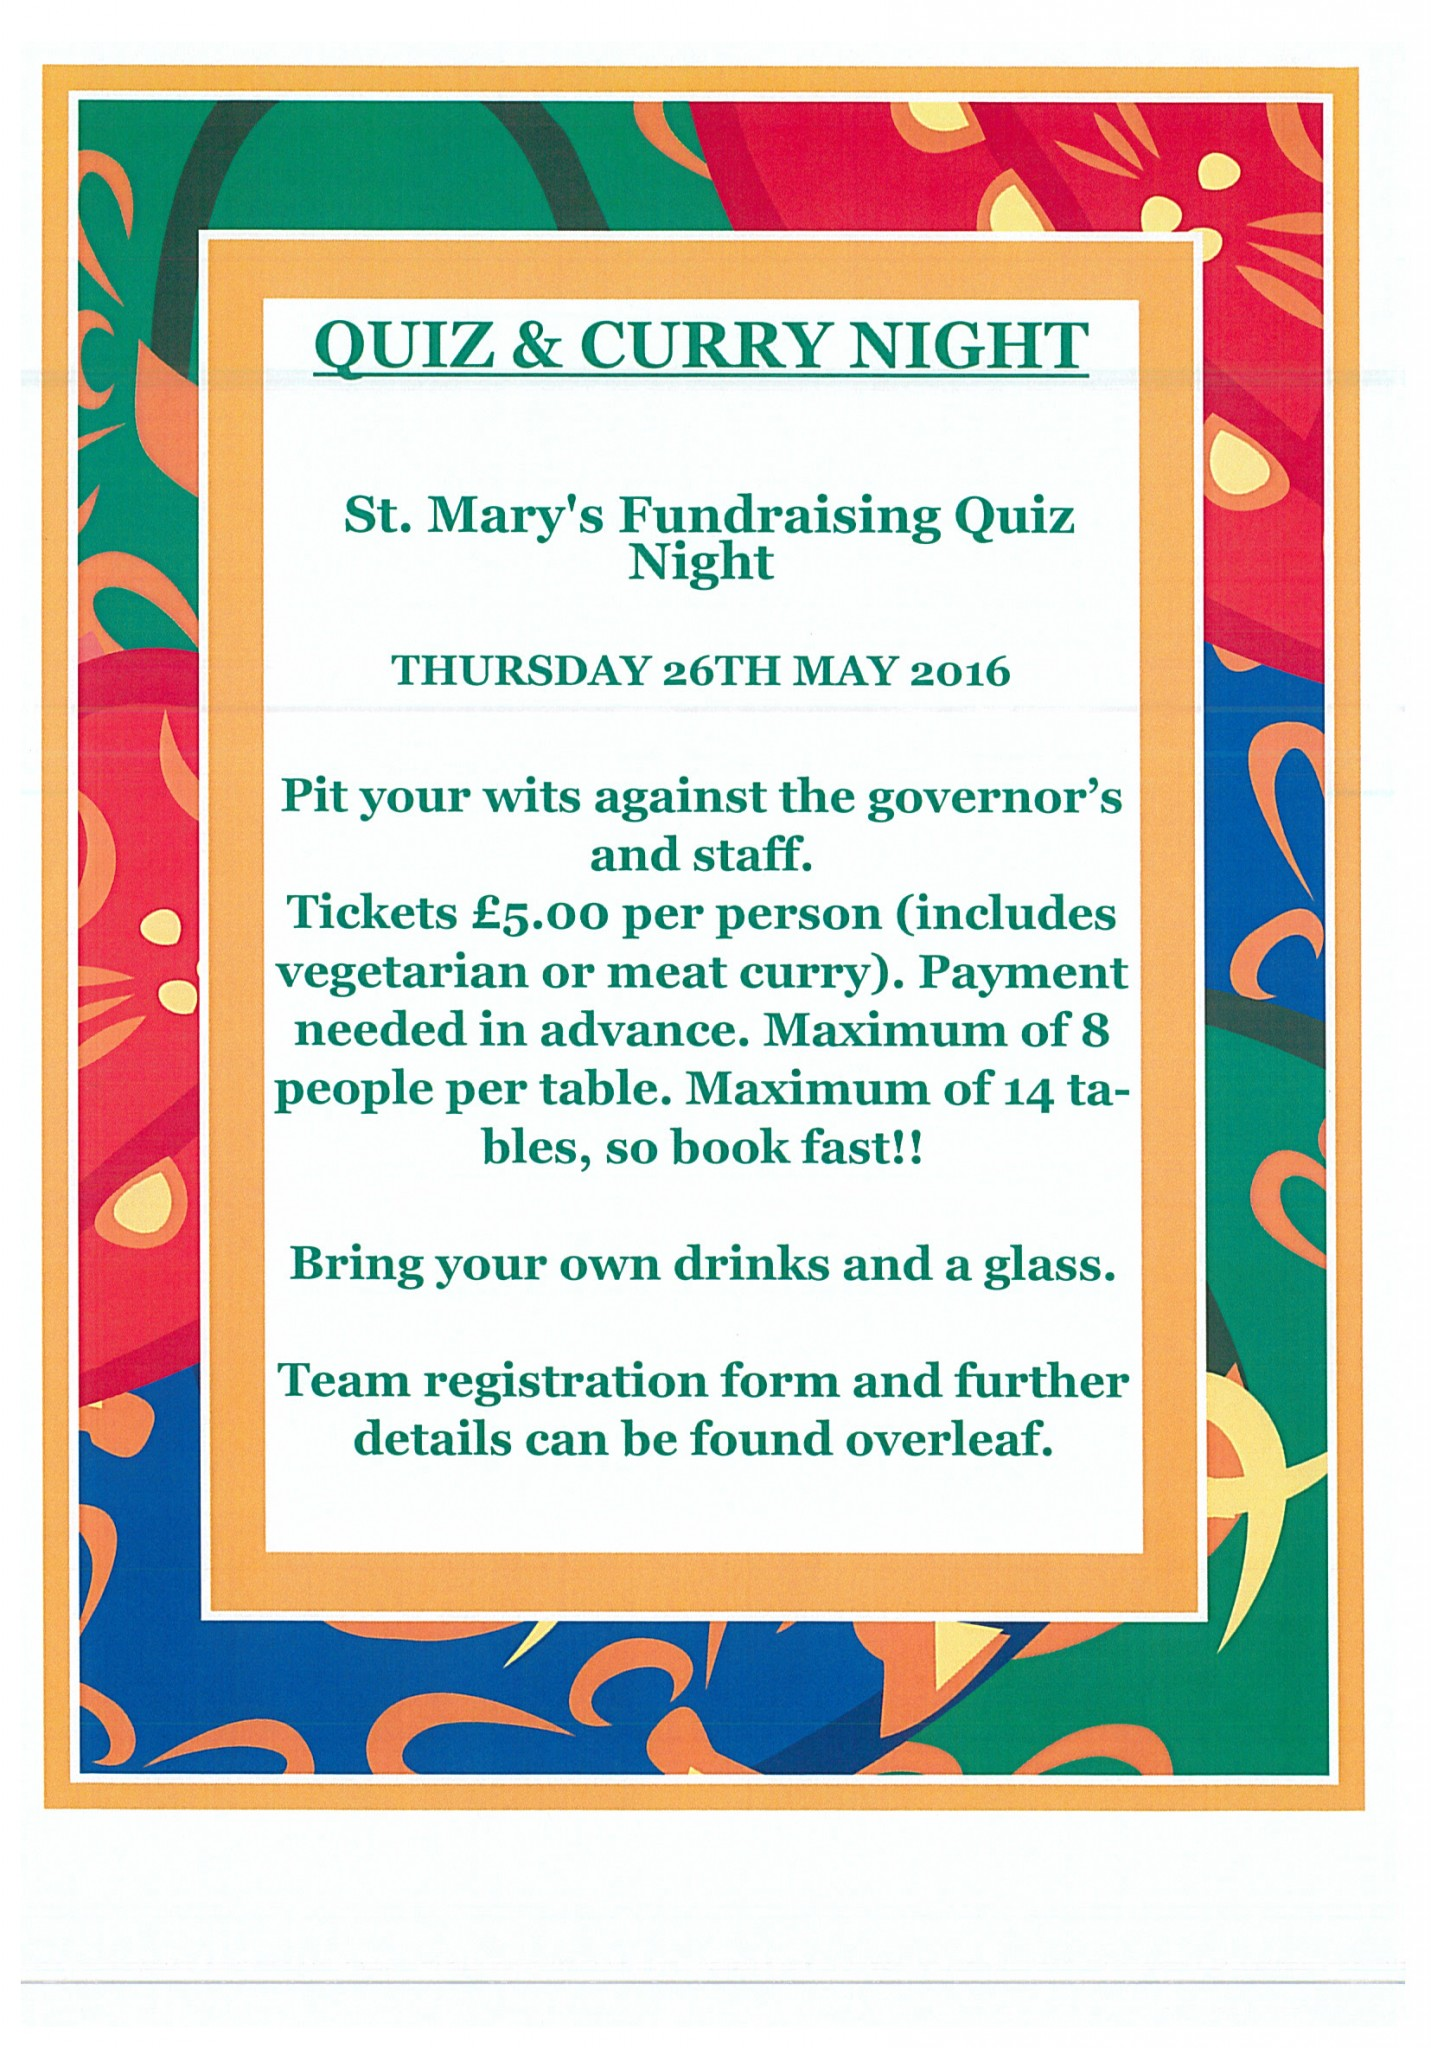 Curry & Quiz night (1)